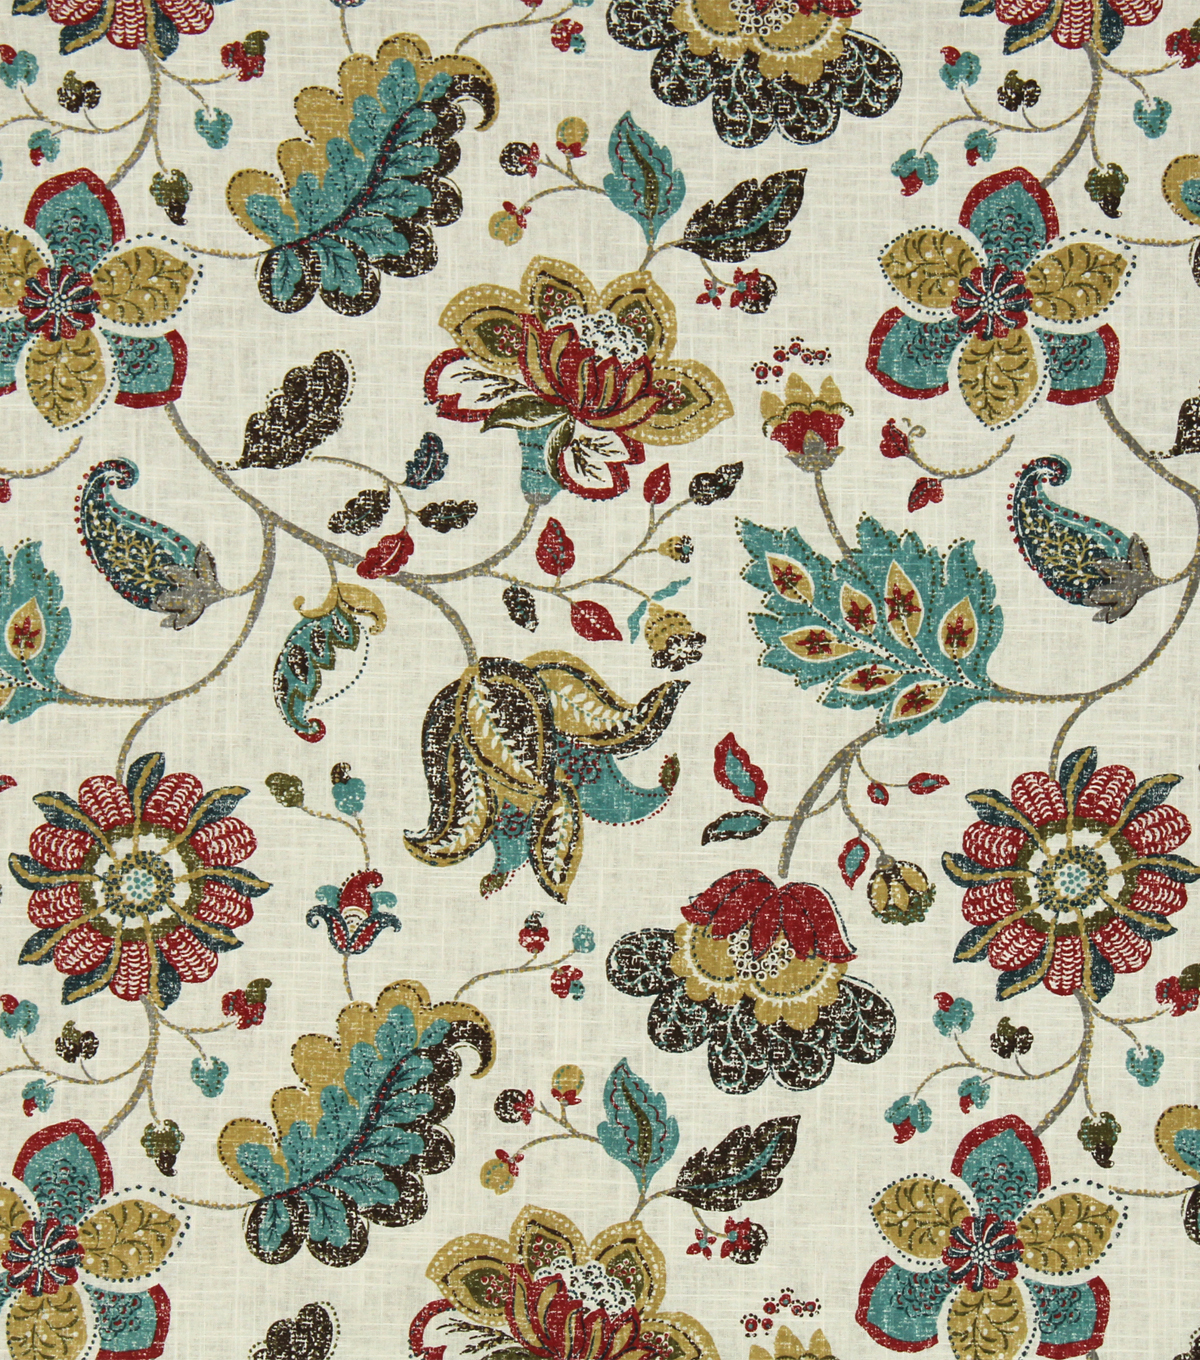 Home Decor 8\u0022x8\u0022 Fabric Swatch-Robert Allen Spring Mix Poppy